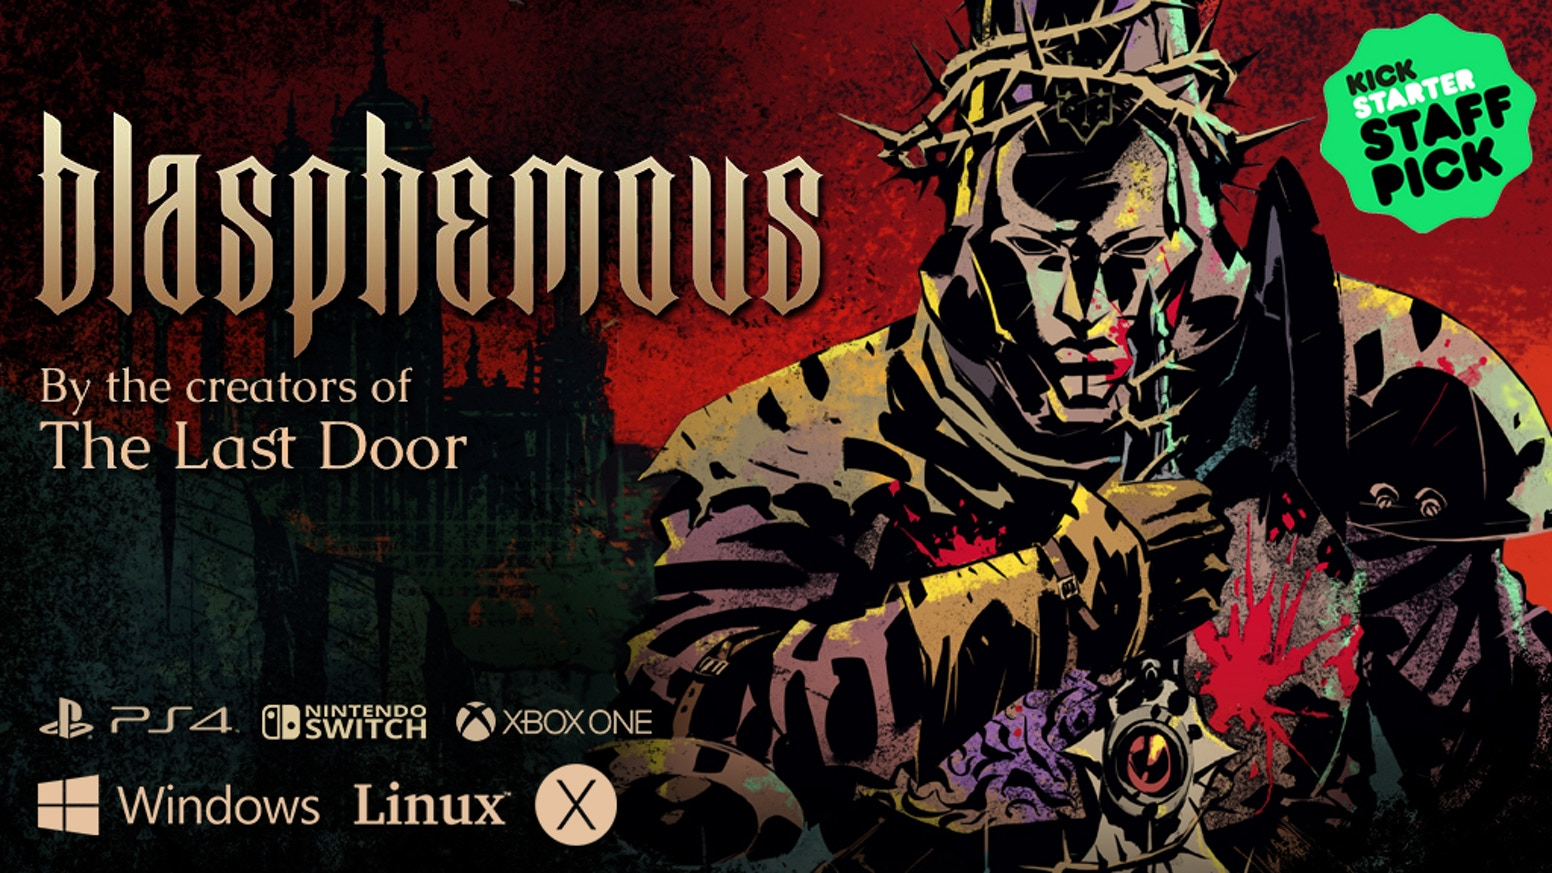 Vanquish bloodthirsty creatures, the devotees of a twisted religion. Hand-crafted pixel art action game by the makers of The Last Door.